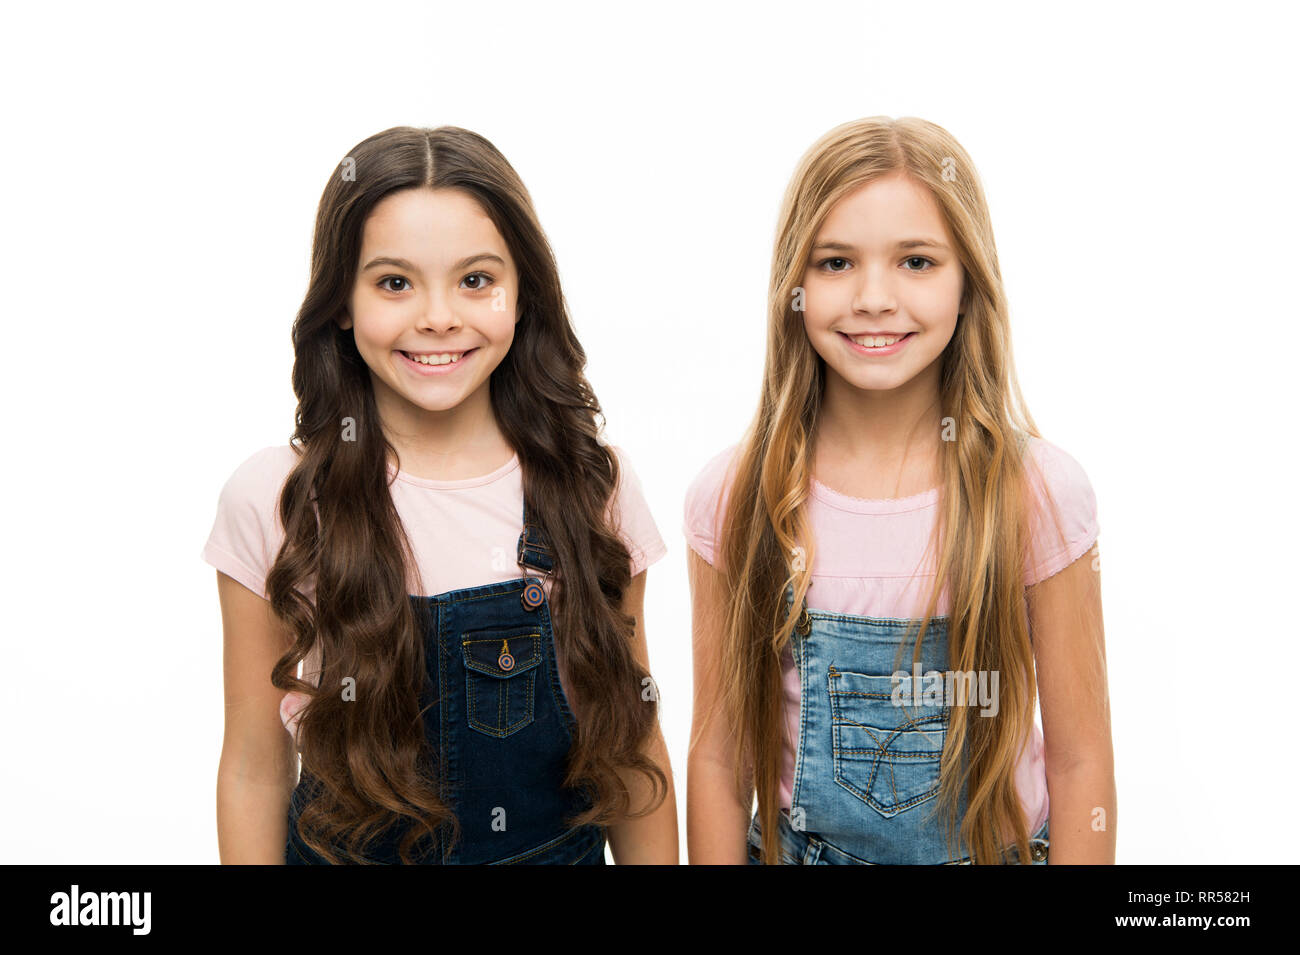 These Stunning Looks Cute Little Girls Wearing New Hairstyle